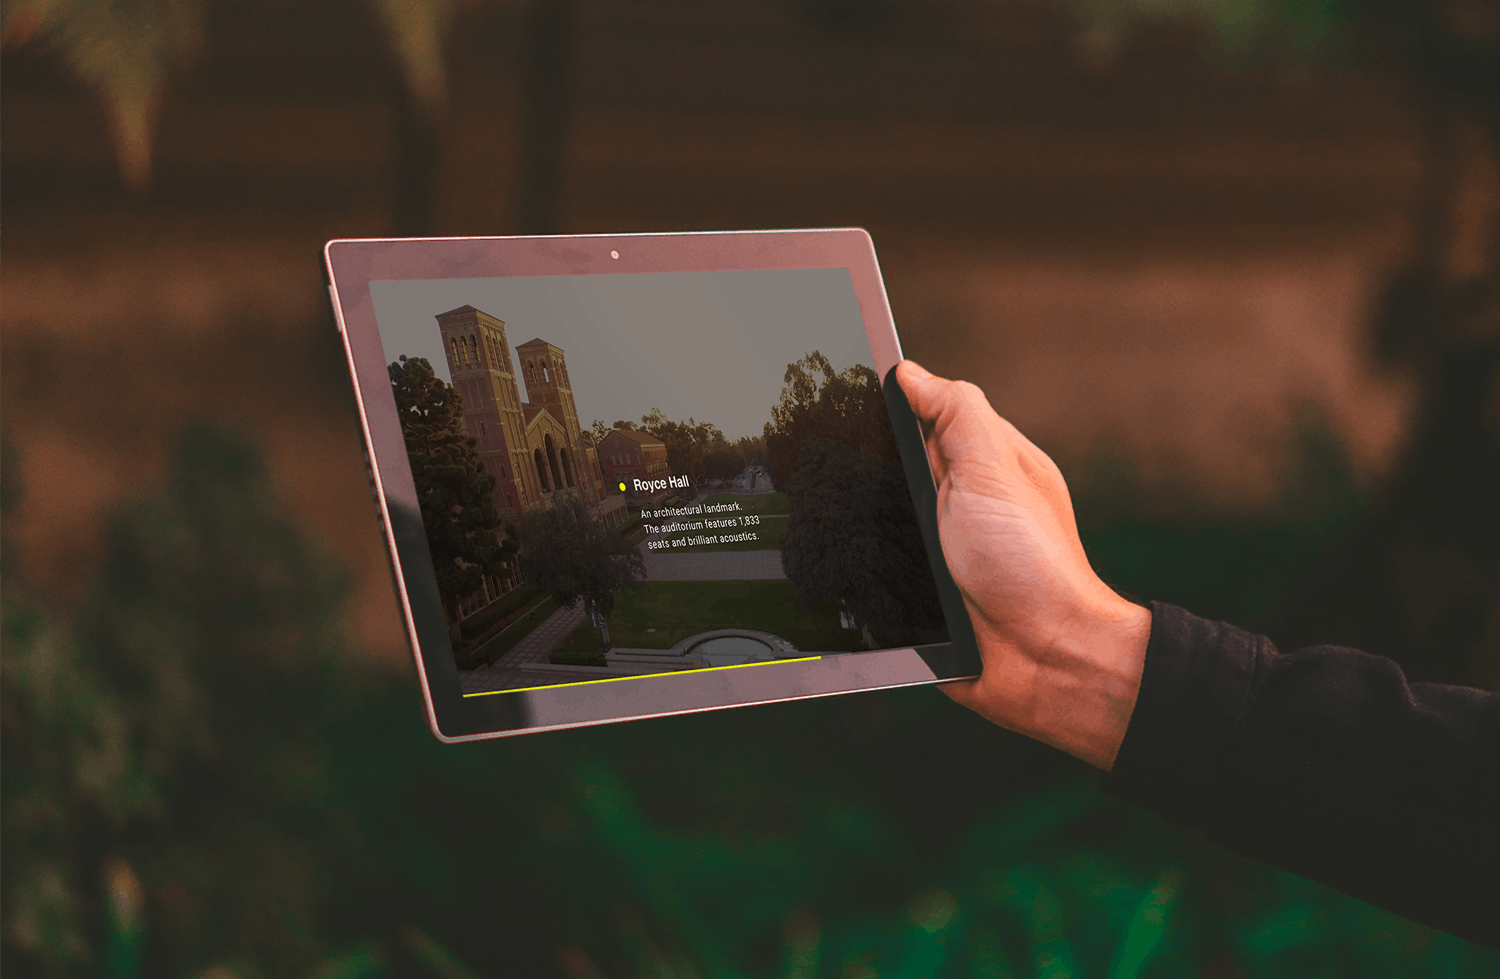 A hand holds an iPad with grass blurred out behind the iPad. The UCLA campus is shown on the iPad.